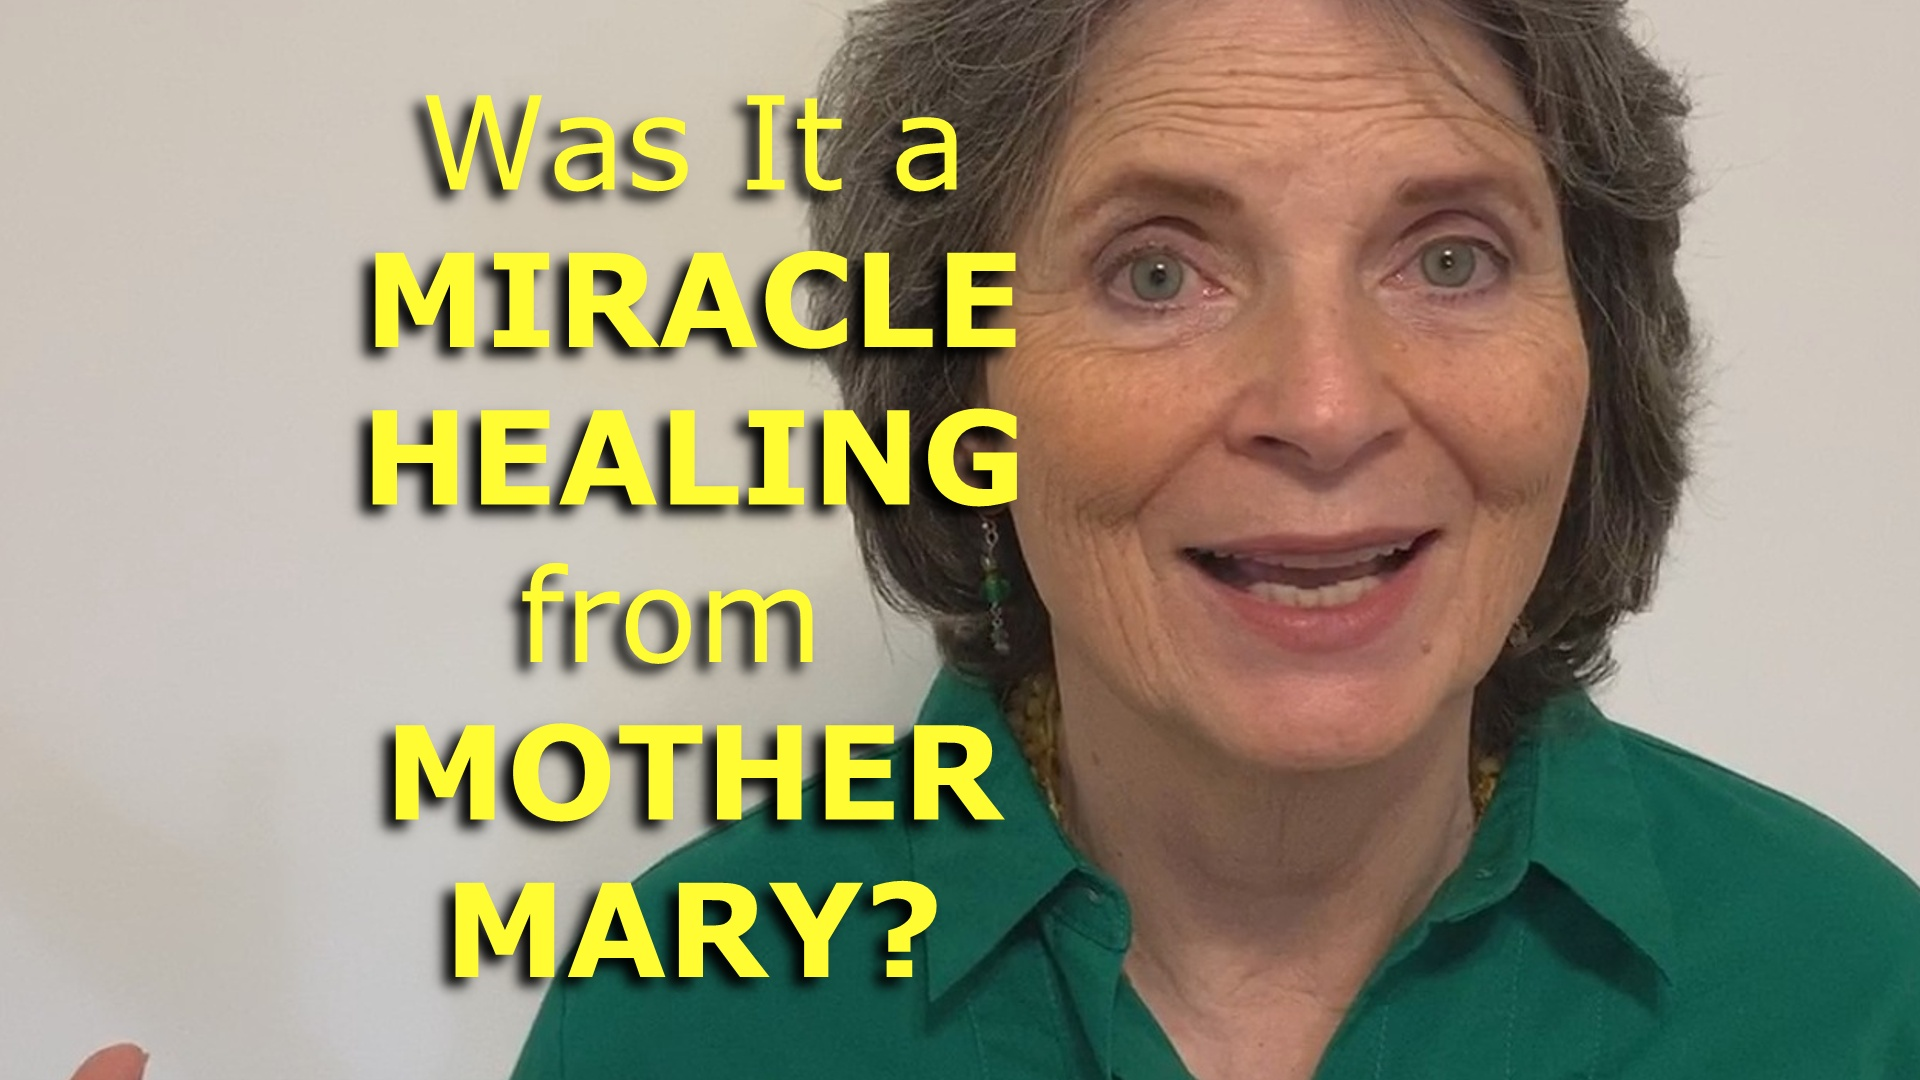 Was it a miraculous healing from mother mary